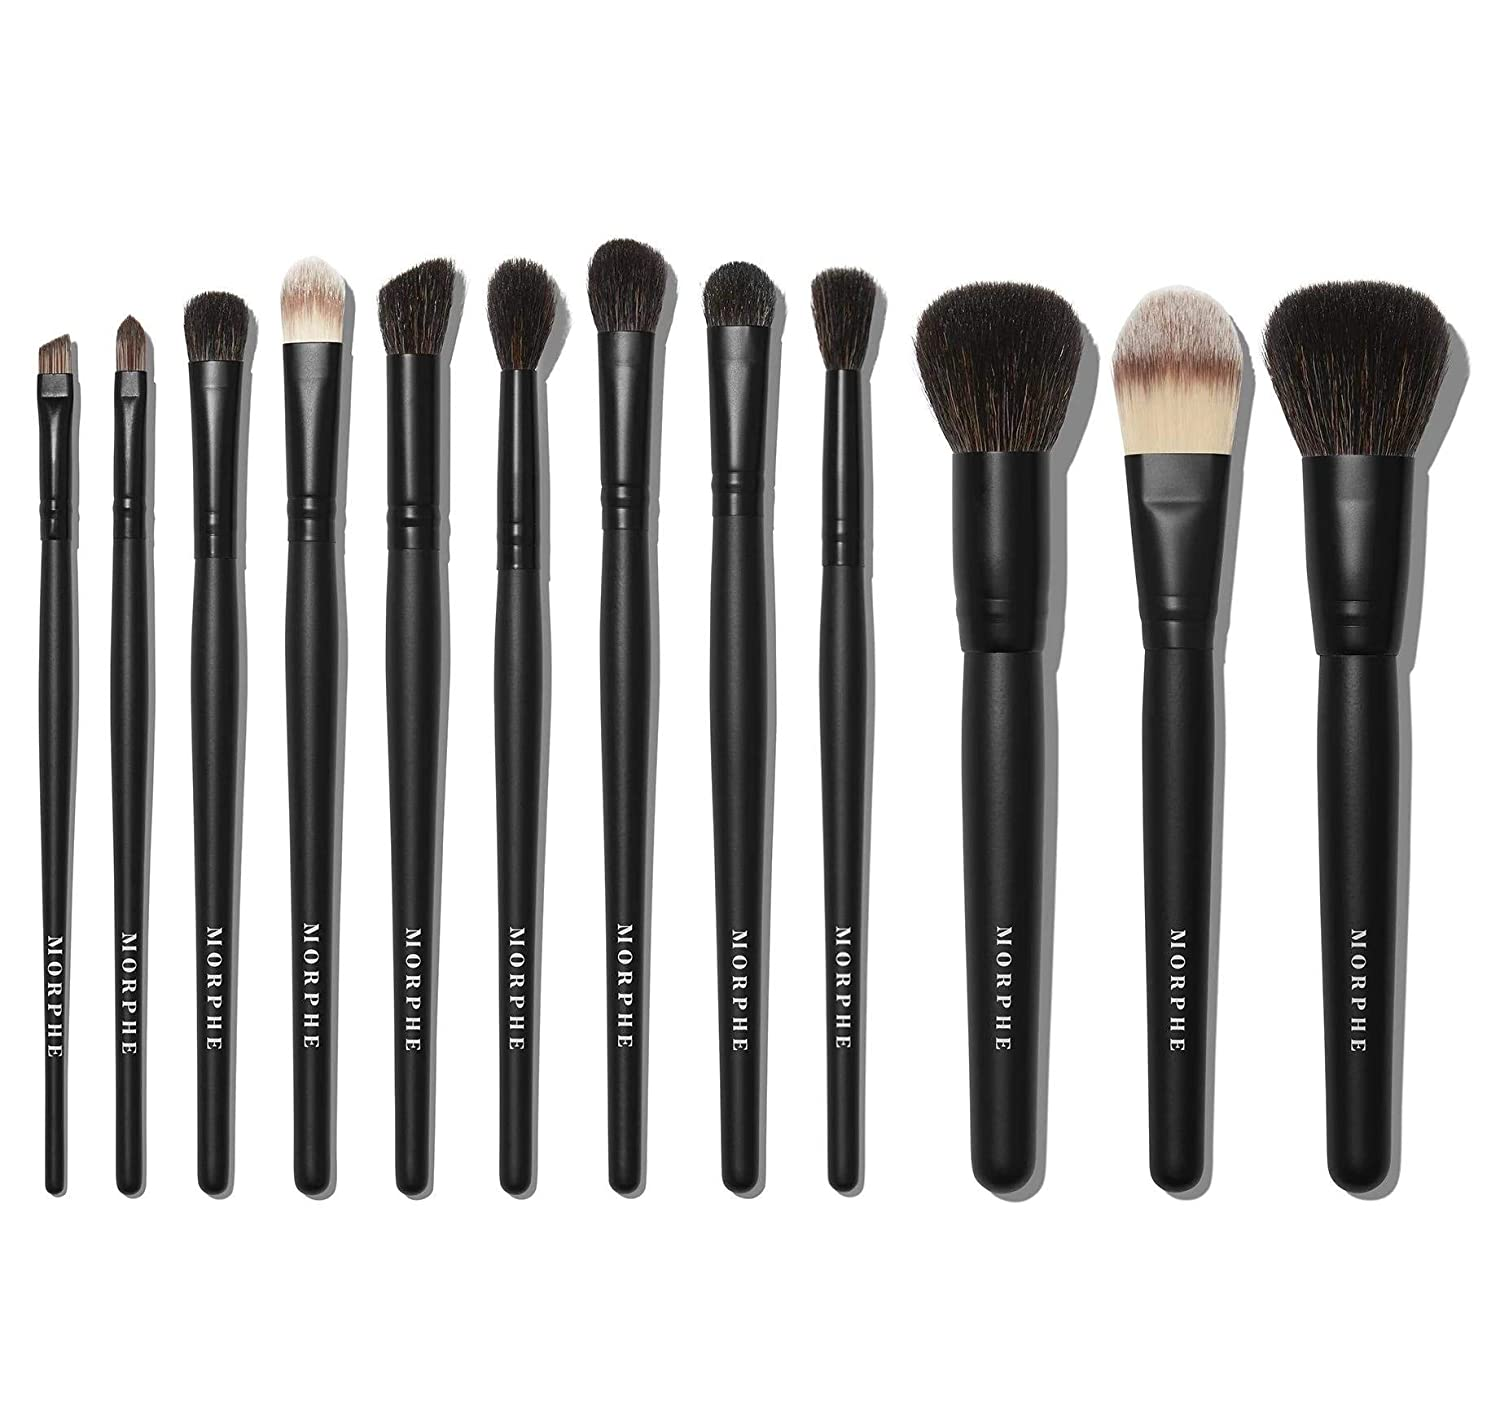 Amazon Com Morphe Brush Set Collection Vacay Mode With Tubby Storage Case Beauty The official account for morphe brushes. morphe brush set collection vacay mode with tubby storage case